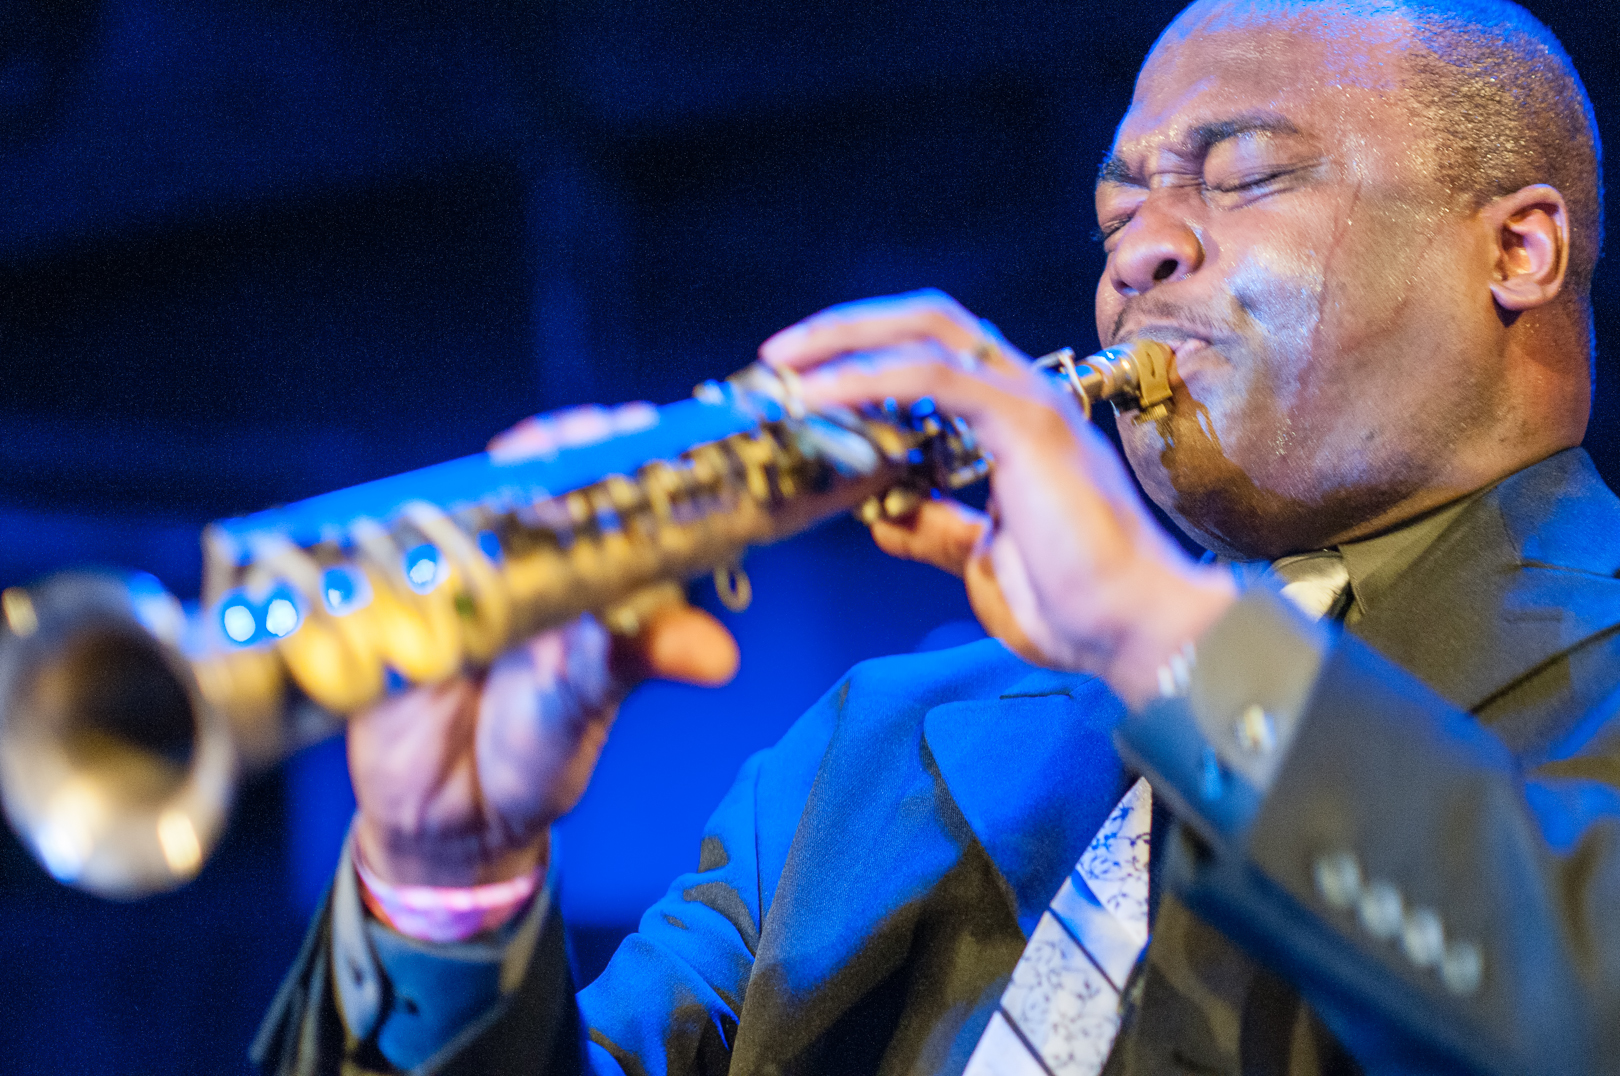 James Carter at le Poisson Rouge at Winter Jazzfest 2013